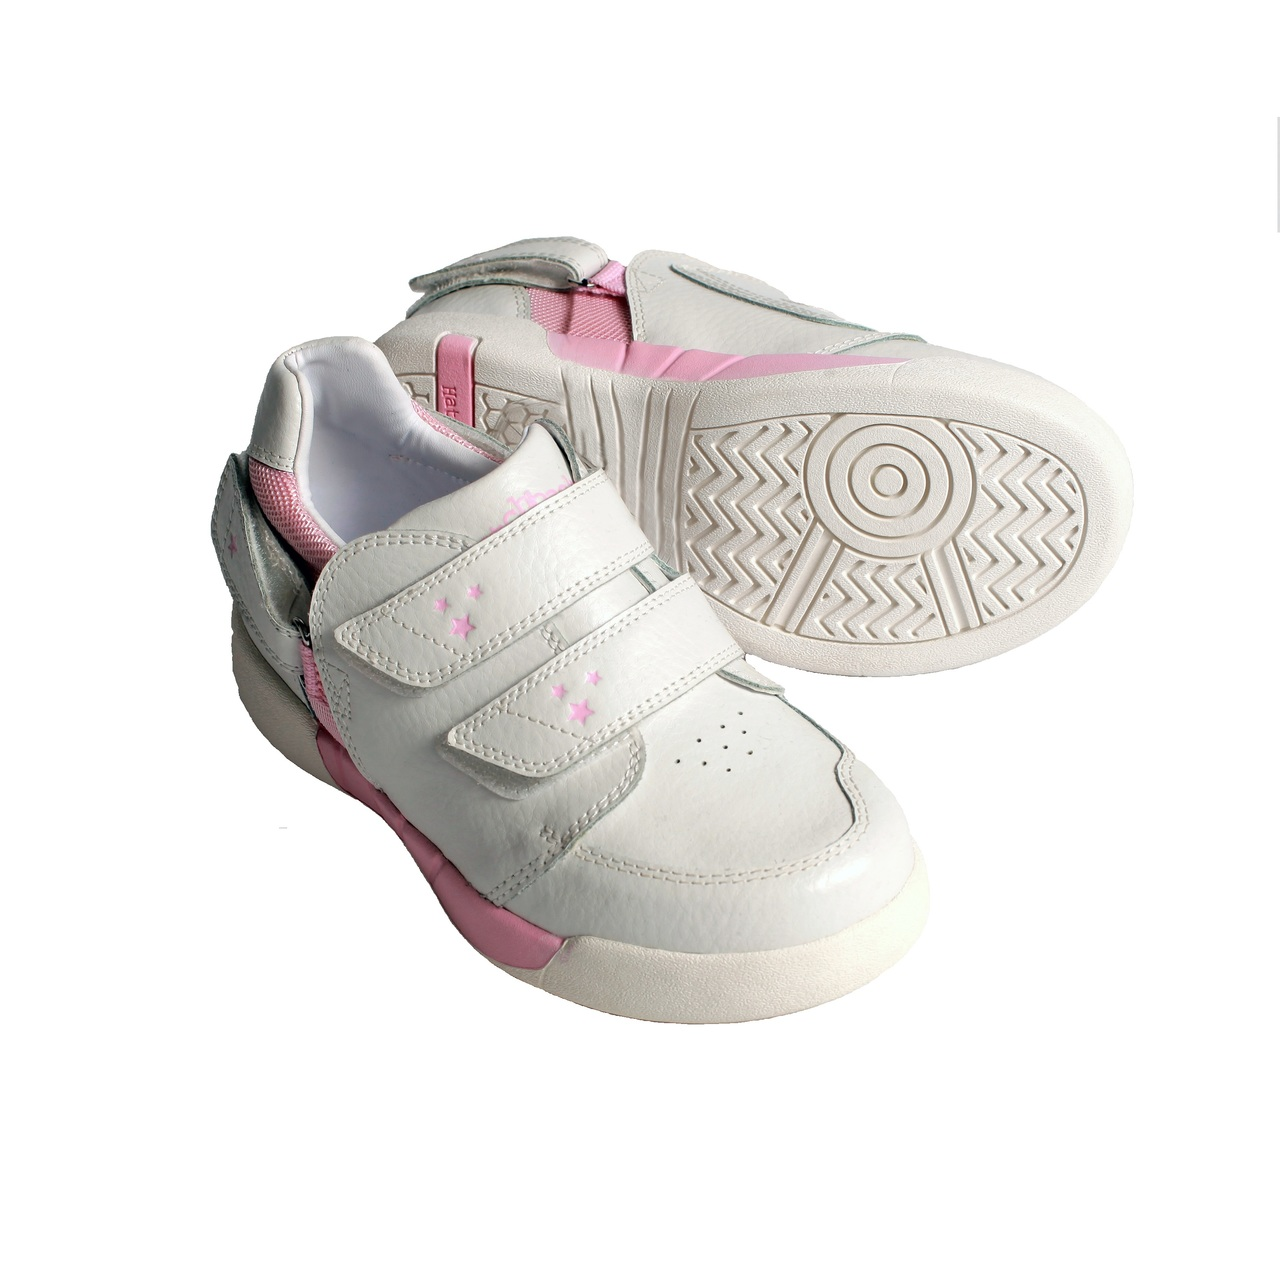 Hatchbacks Aspire Kids Shoe   White Leather  Light Pink   Stars Accent   Clearance sizes 5c-3k - Hatchbacks 43a84bed4